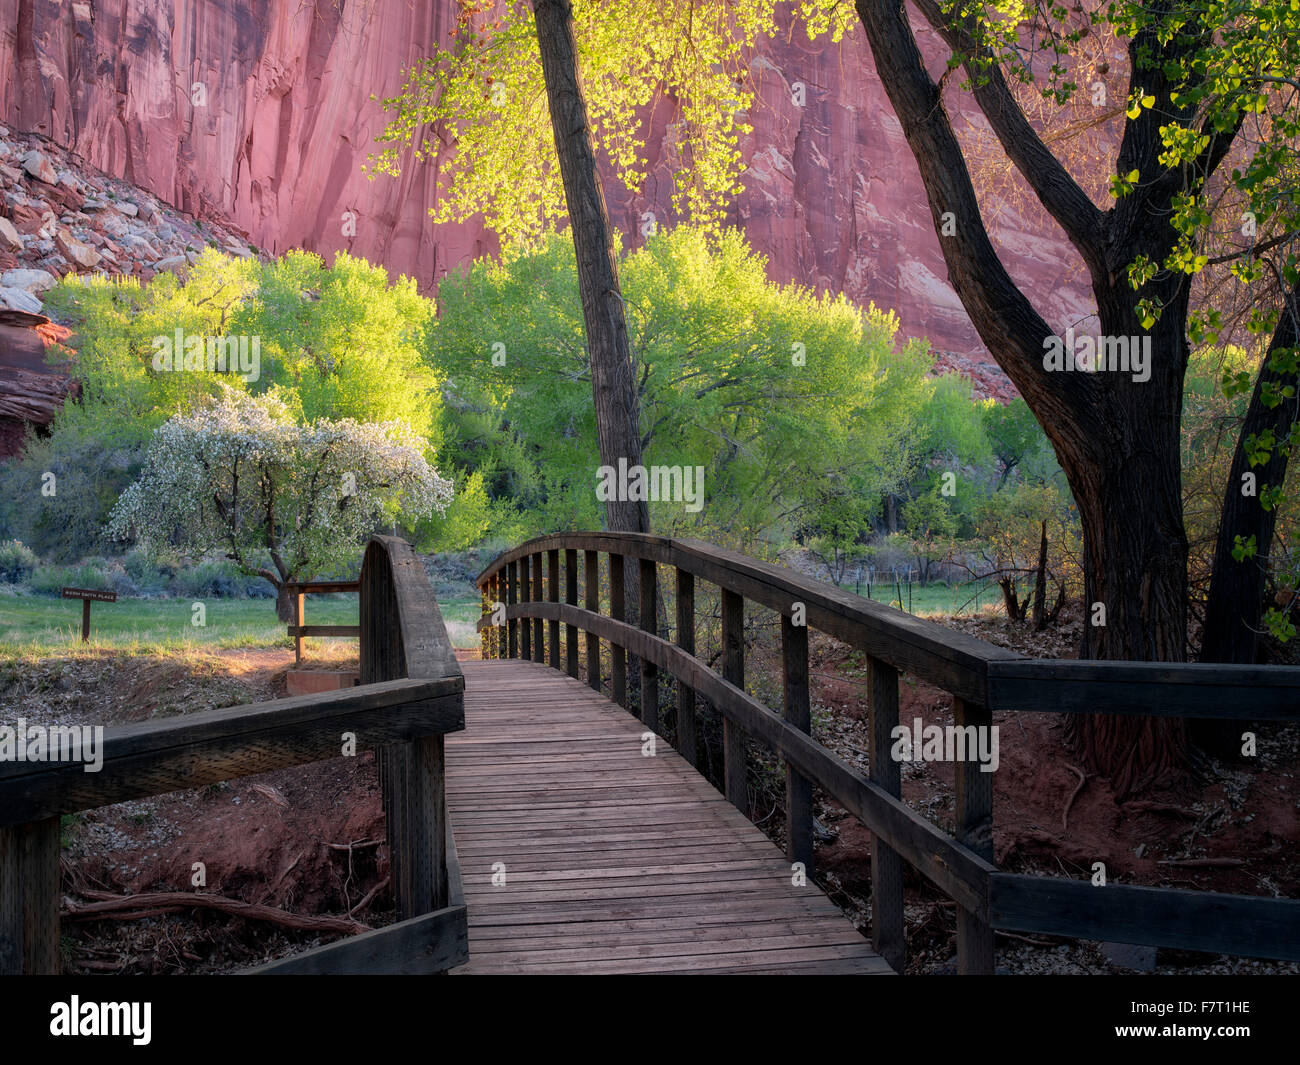 Cottonwood trees and rock formations with bridge at Merin Smith Place. Fruita, Capitol Reef National Park, Utah, - Stock Image